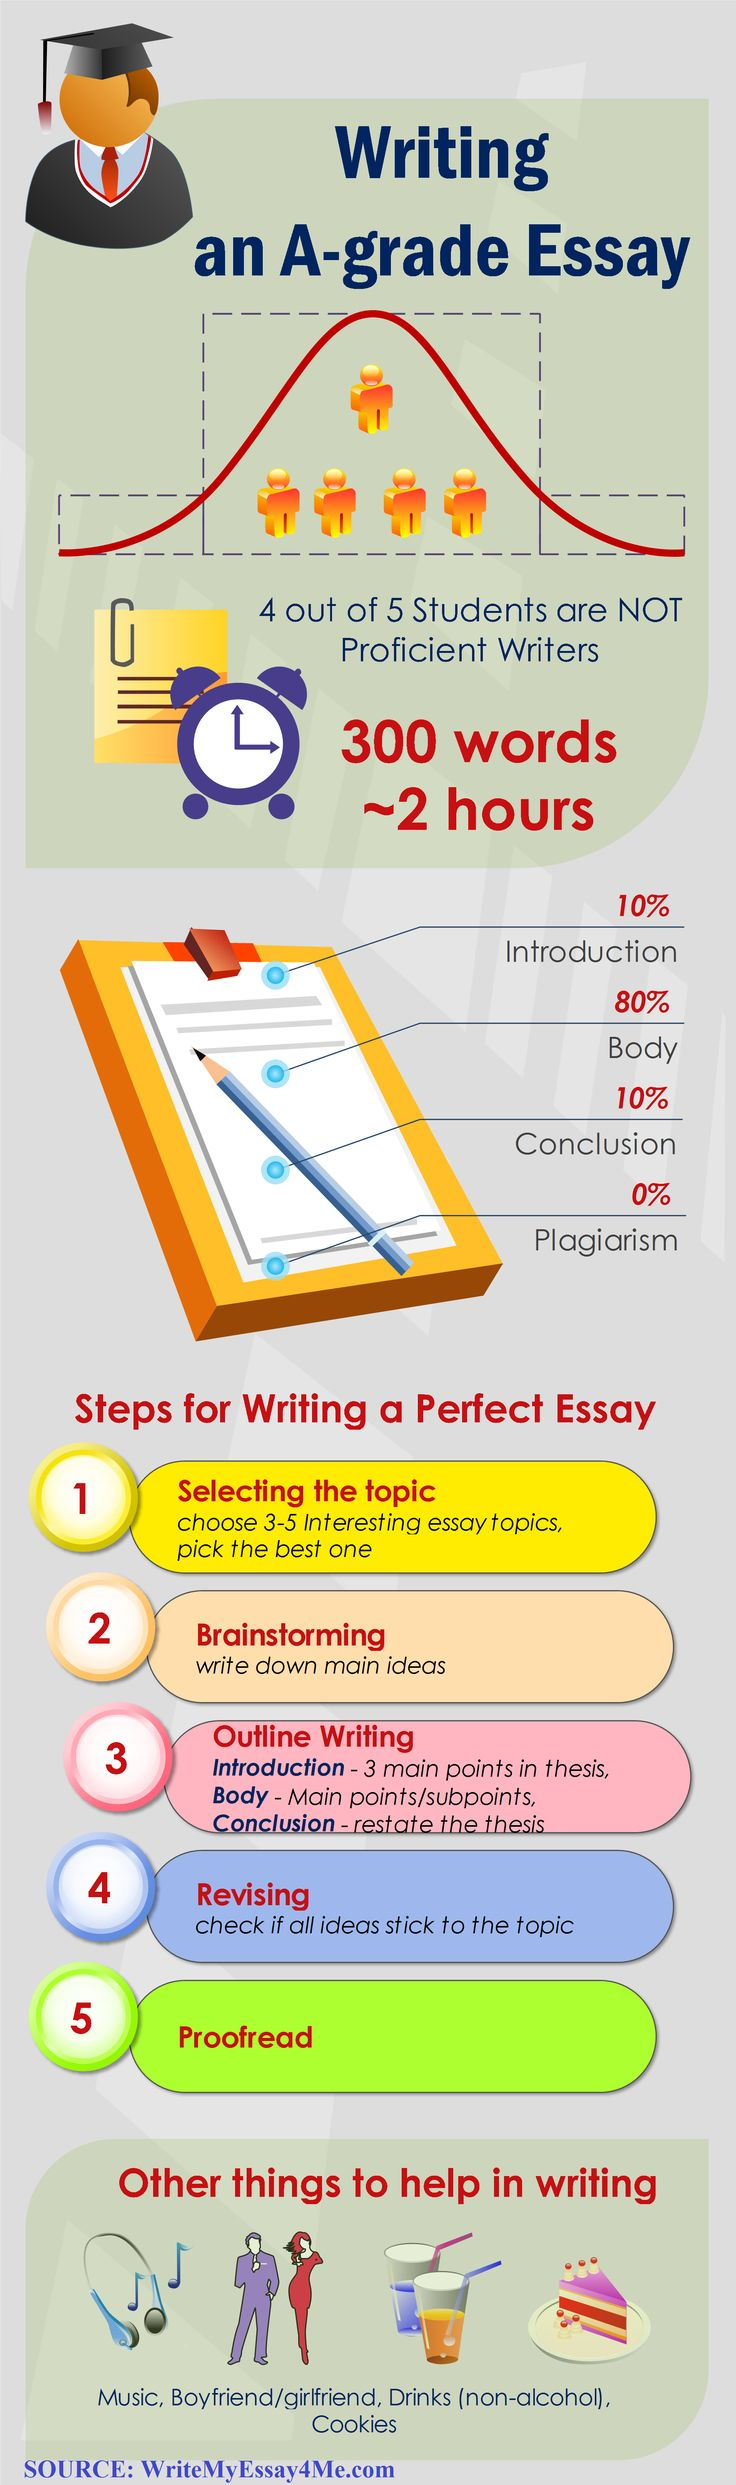 best ideas about essay writing tips essay tips educational technology infographics tips for writing paperscollege essay